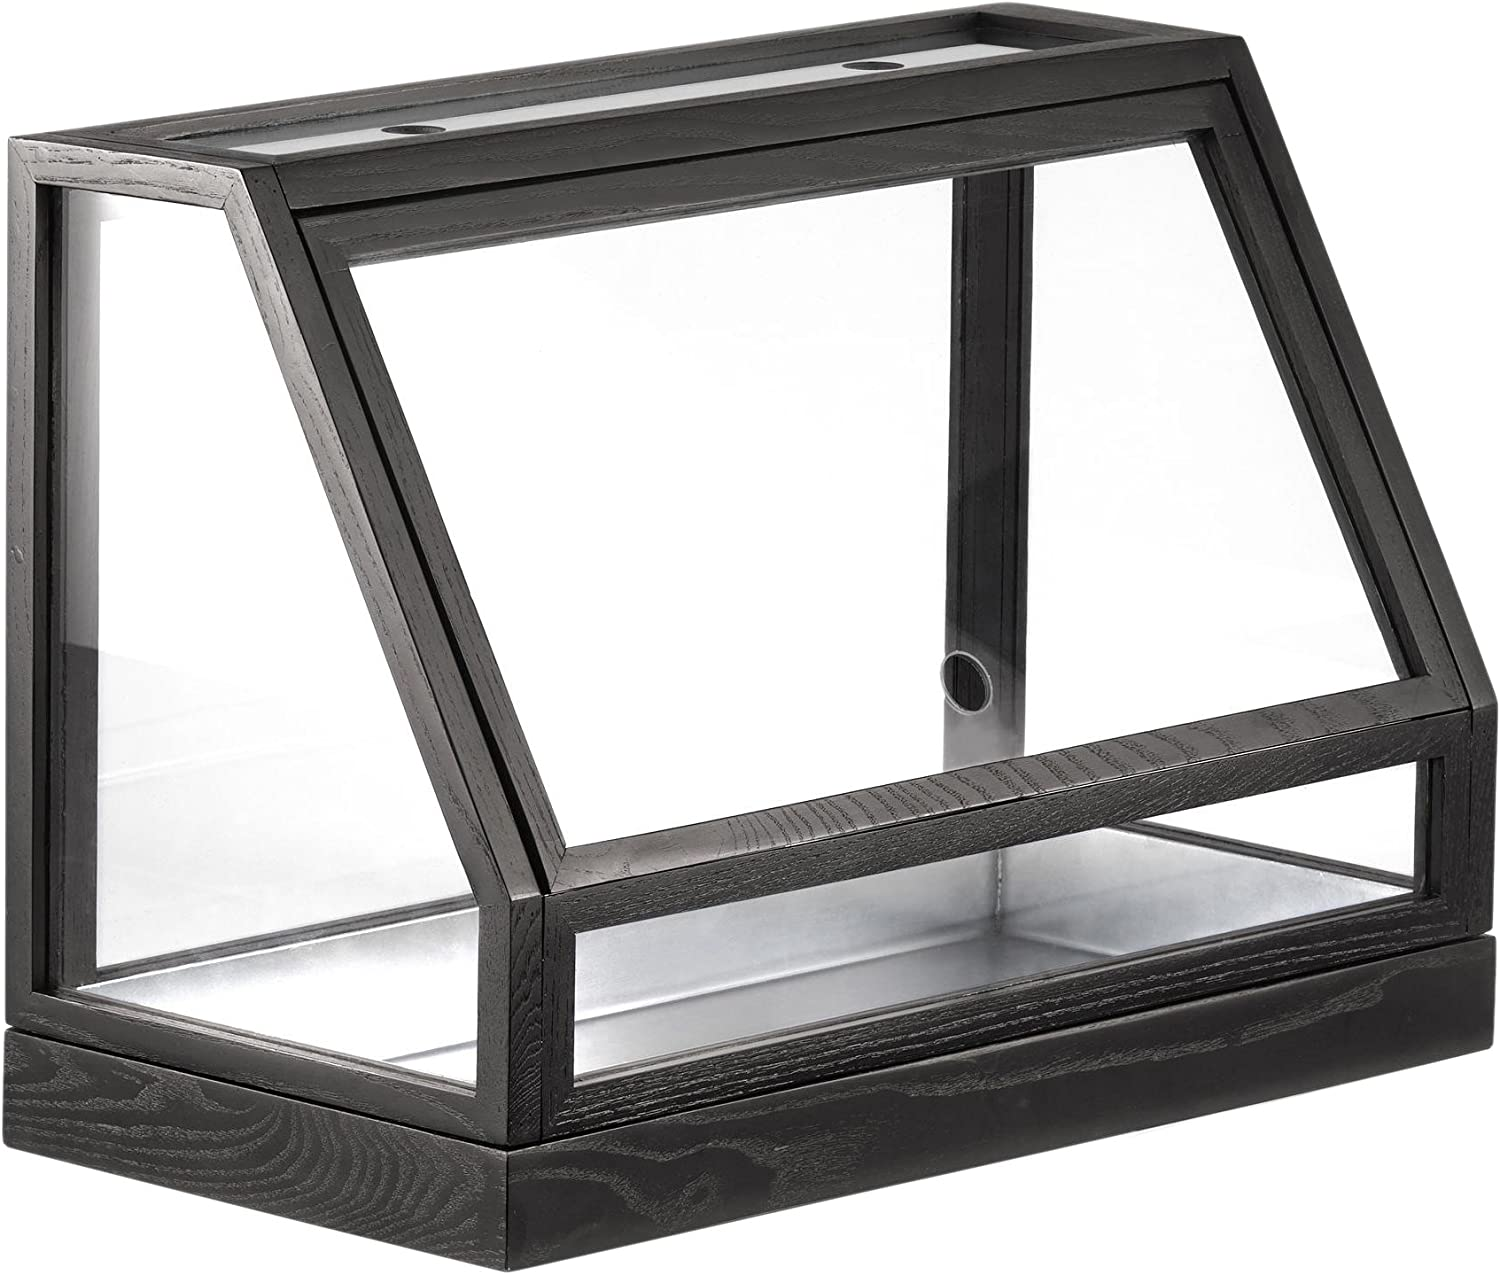 Design house stockholm Greenhouse Mini Conservatory ash dark grey lacquered only for indoor use 48x34x24cm